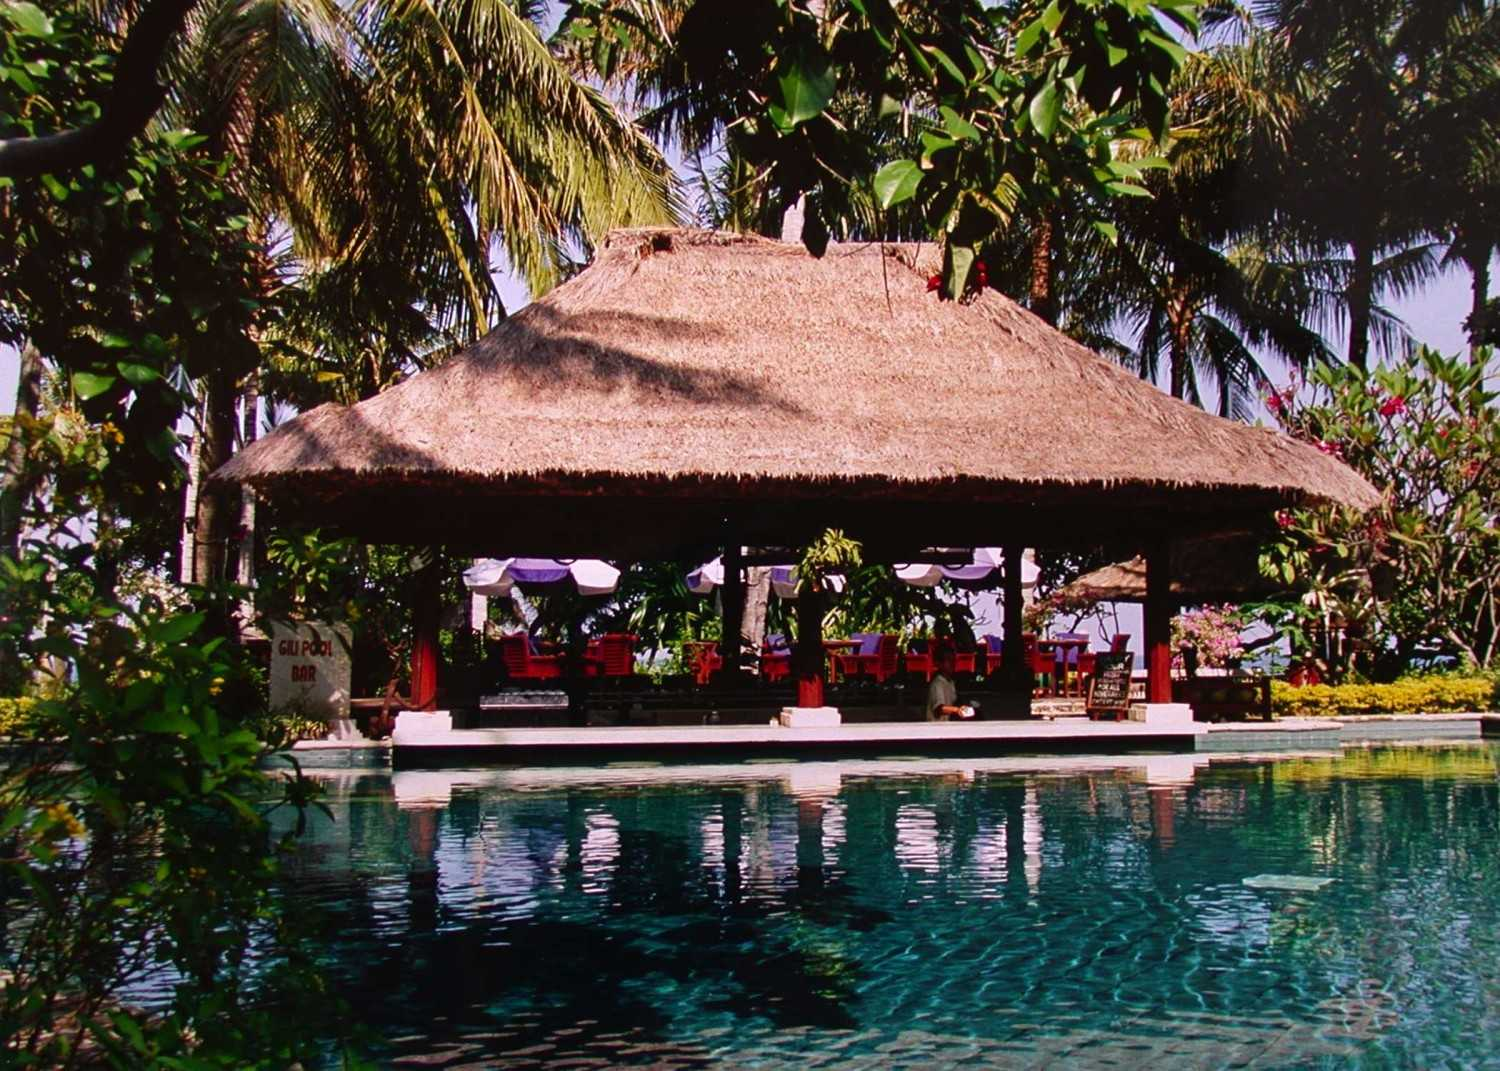 Dedy Holiday Inn Lombok Lombok Lombok Swimming Pool  16048